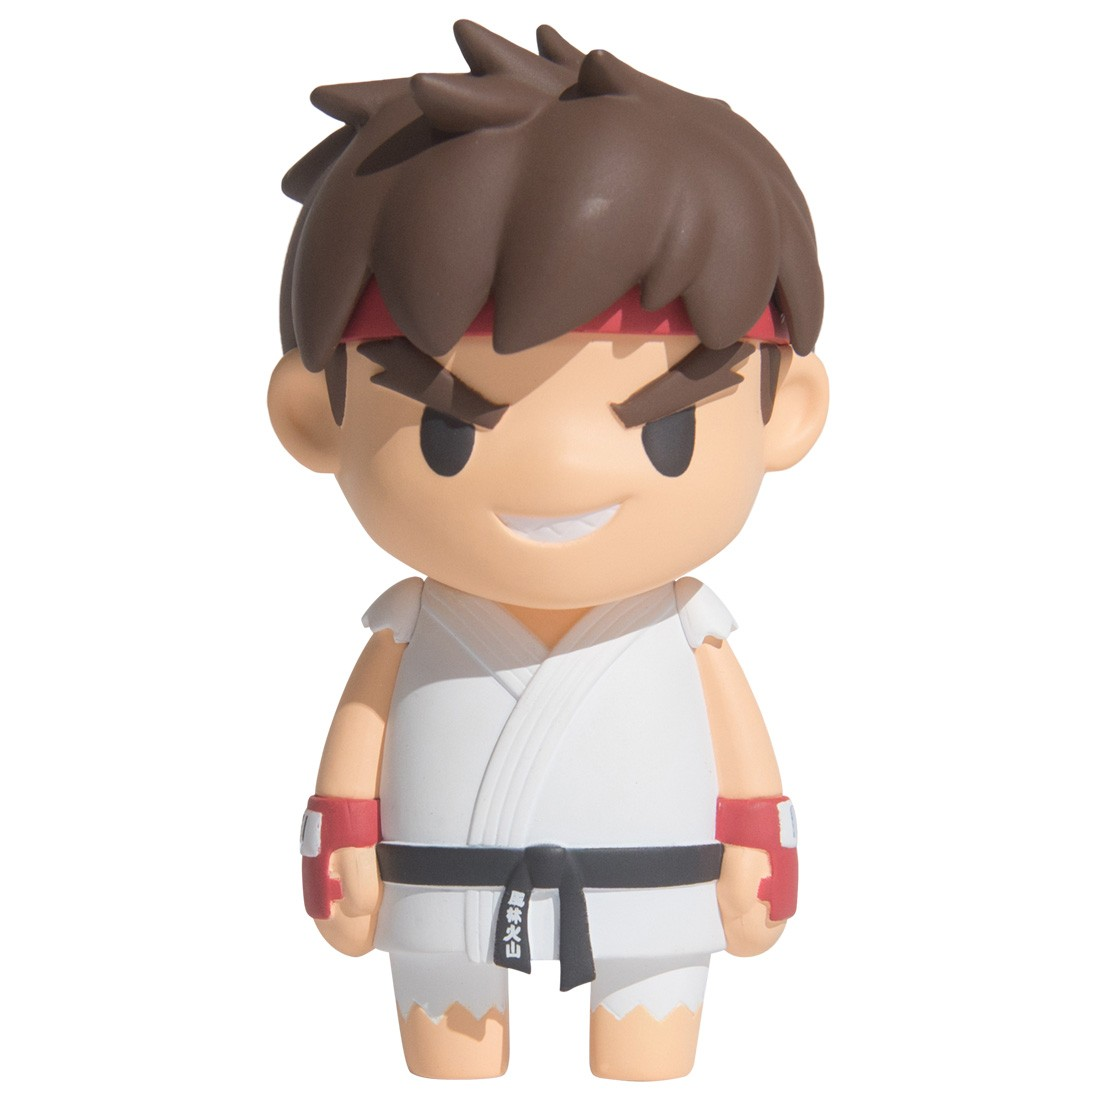 Kokies Street Fighter Original Ryu Figure (white)